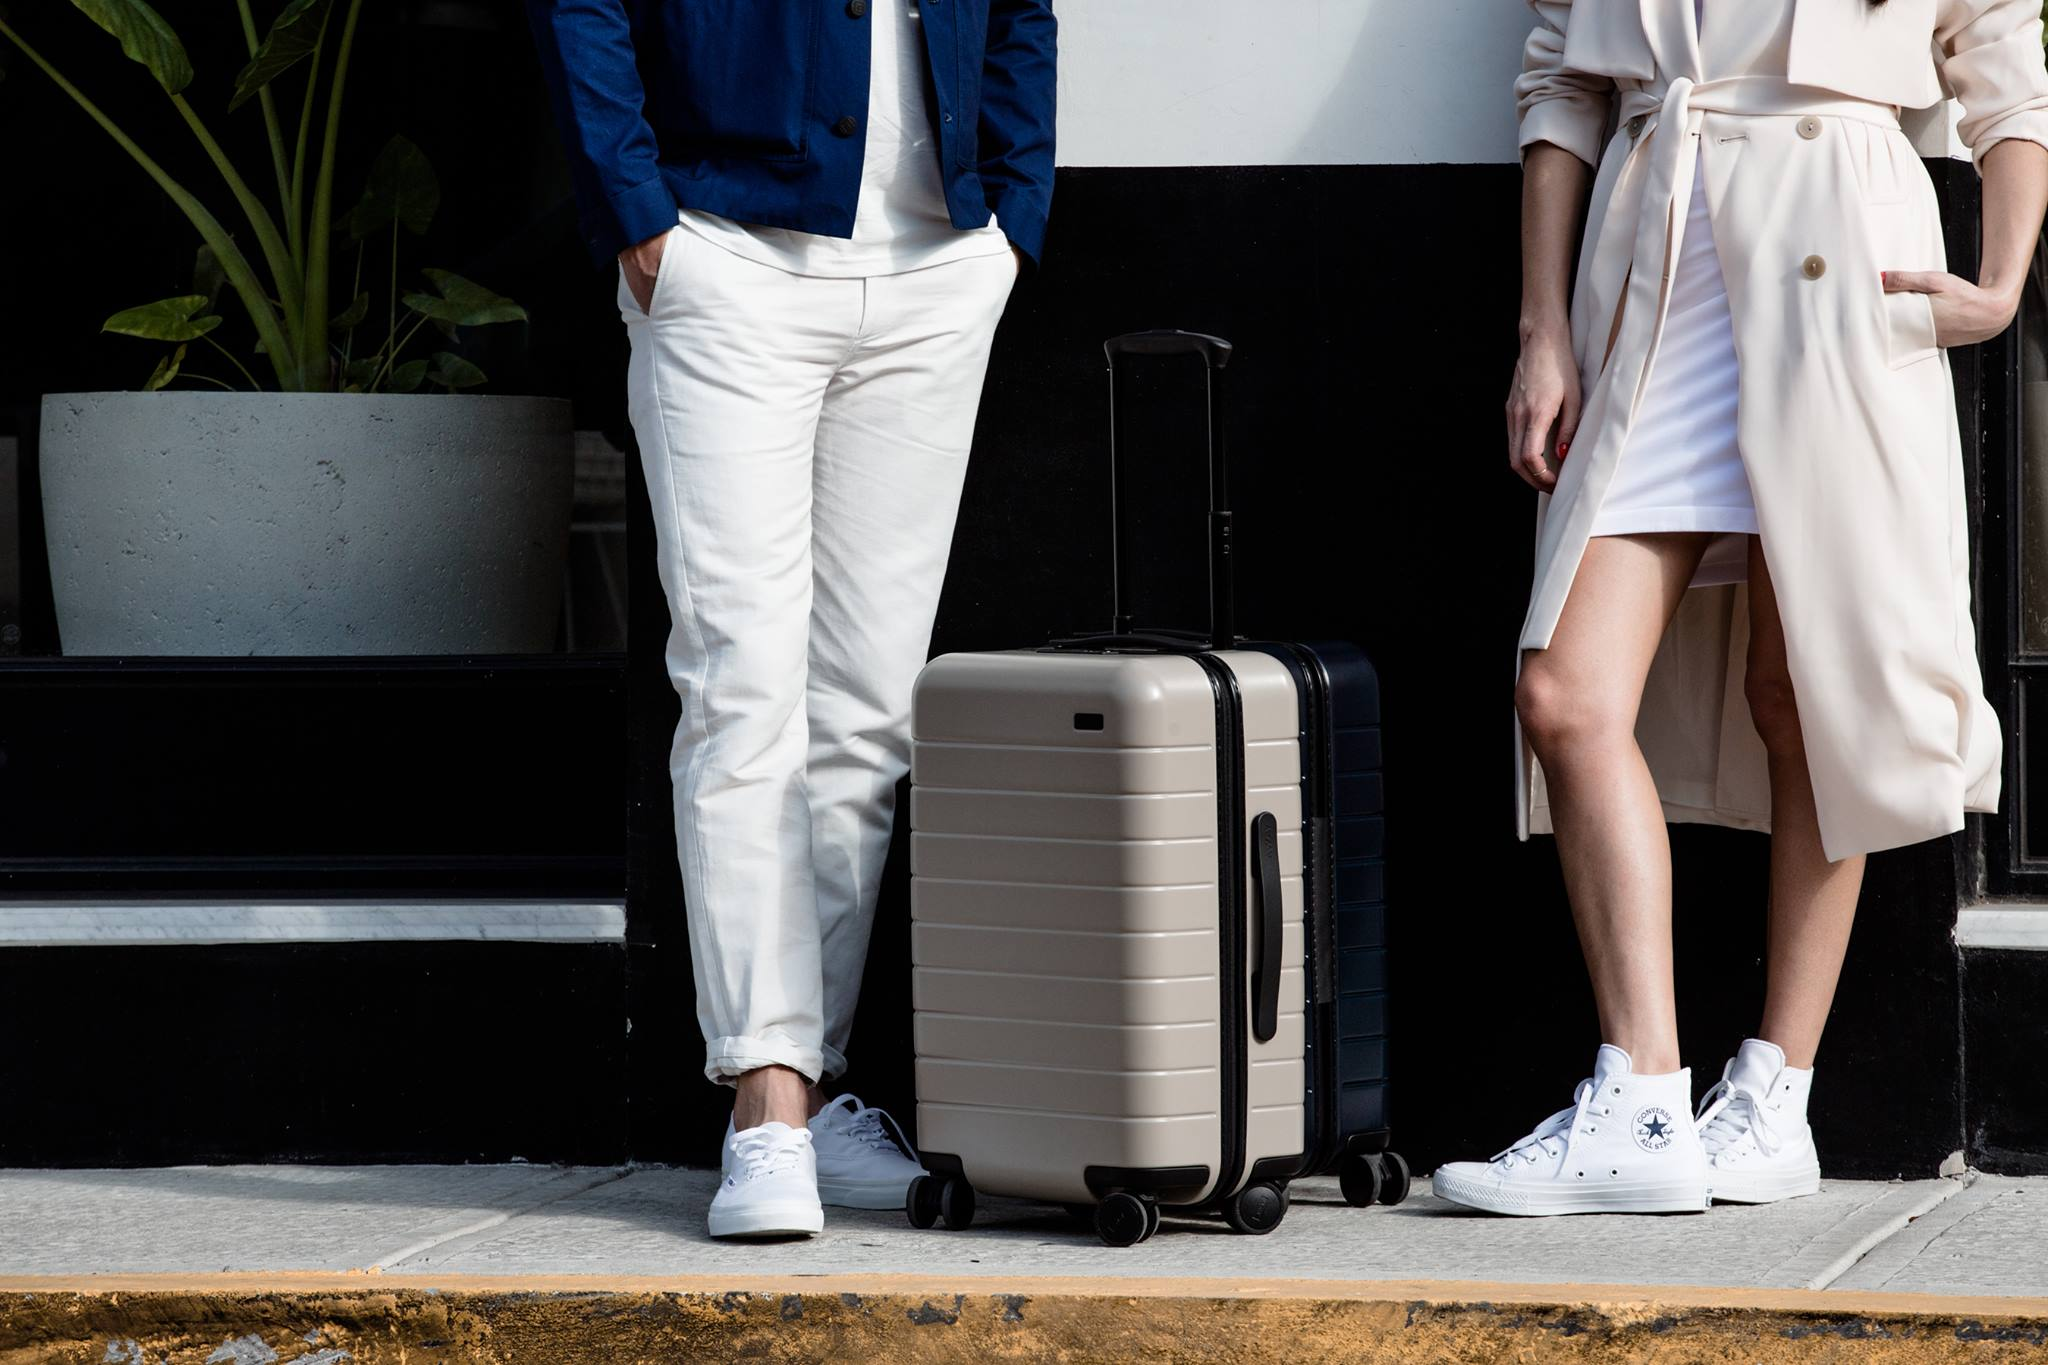 A man and a woman, shown from the waist down, standing near a carry on suitcase